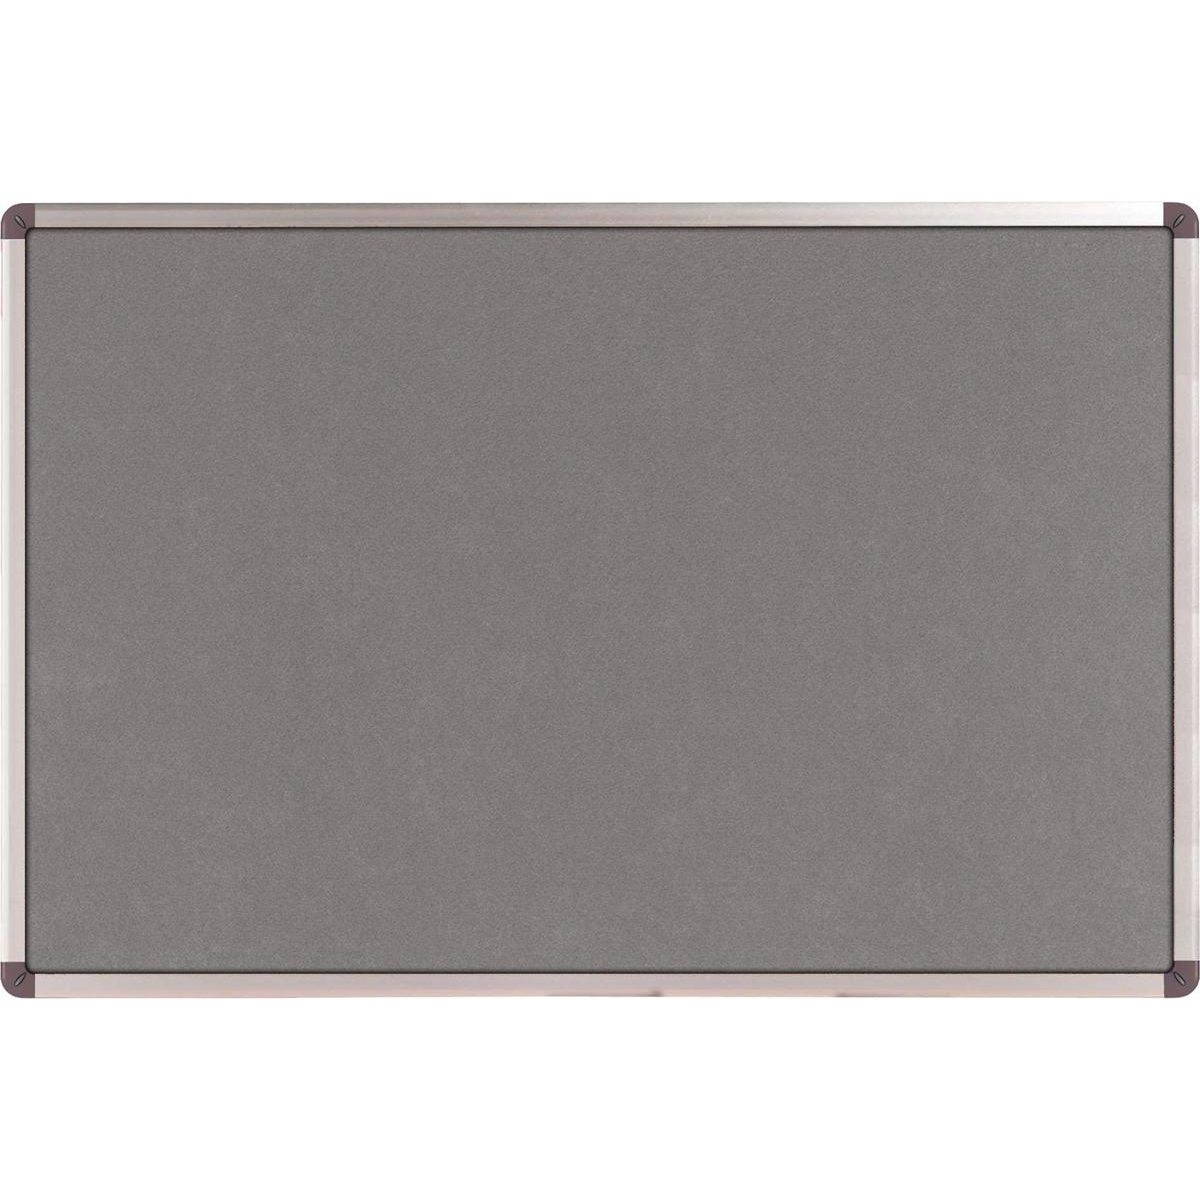 Nobo Classic Noticeboard Felt with Aluminium Frame W1200xH900mm Grey Ref 1900912